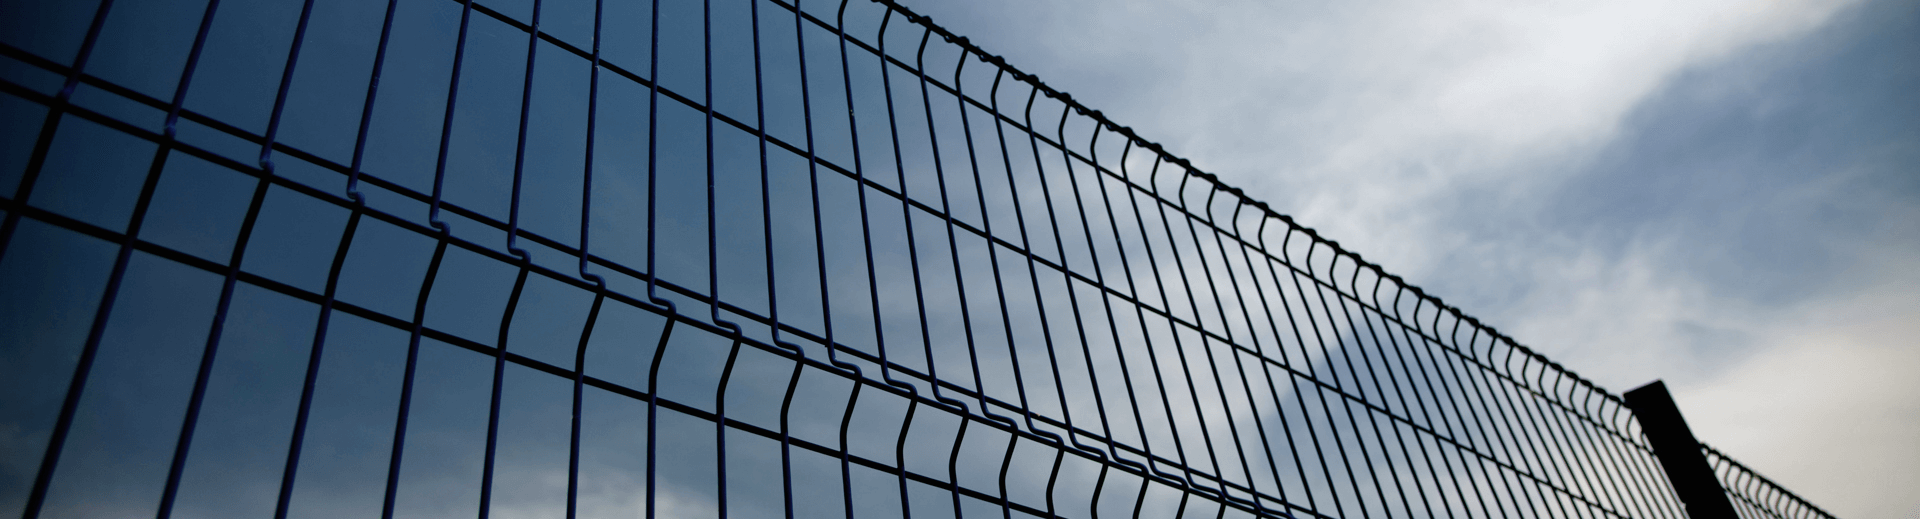 Weld mesh for high security fencing that you can rely on